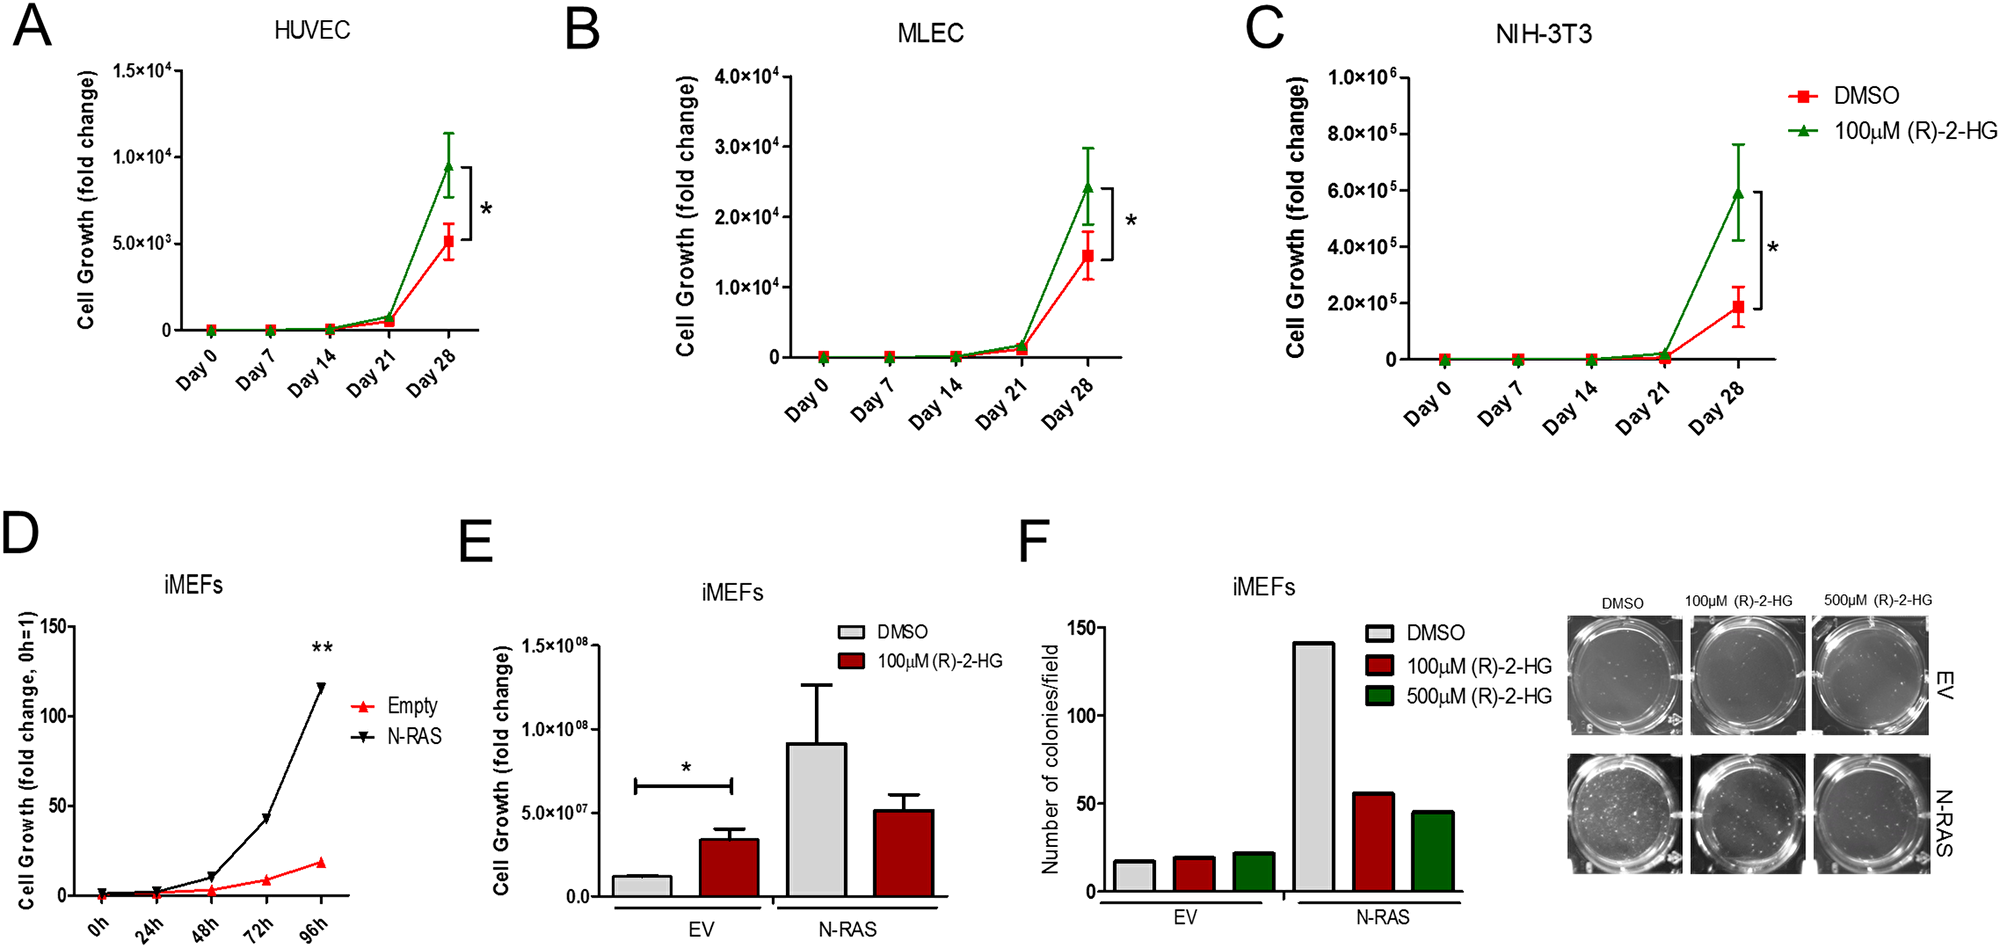 (R)-2-HG suppresses tumor colony formation following transformation with oncogenic Ras.